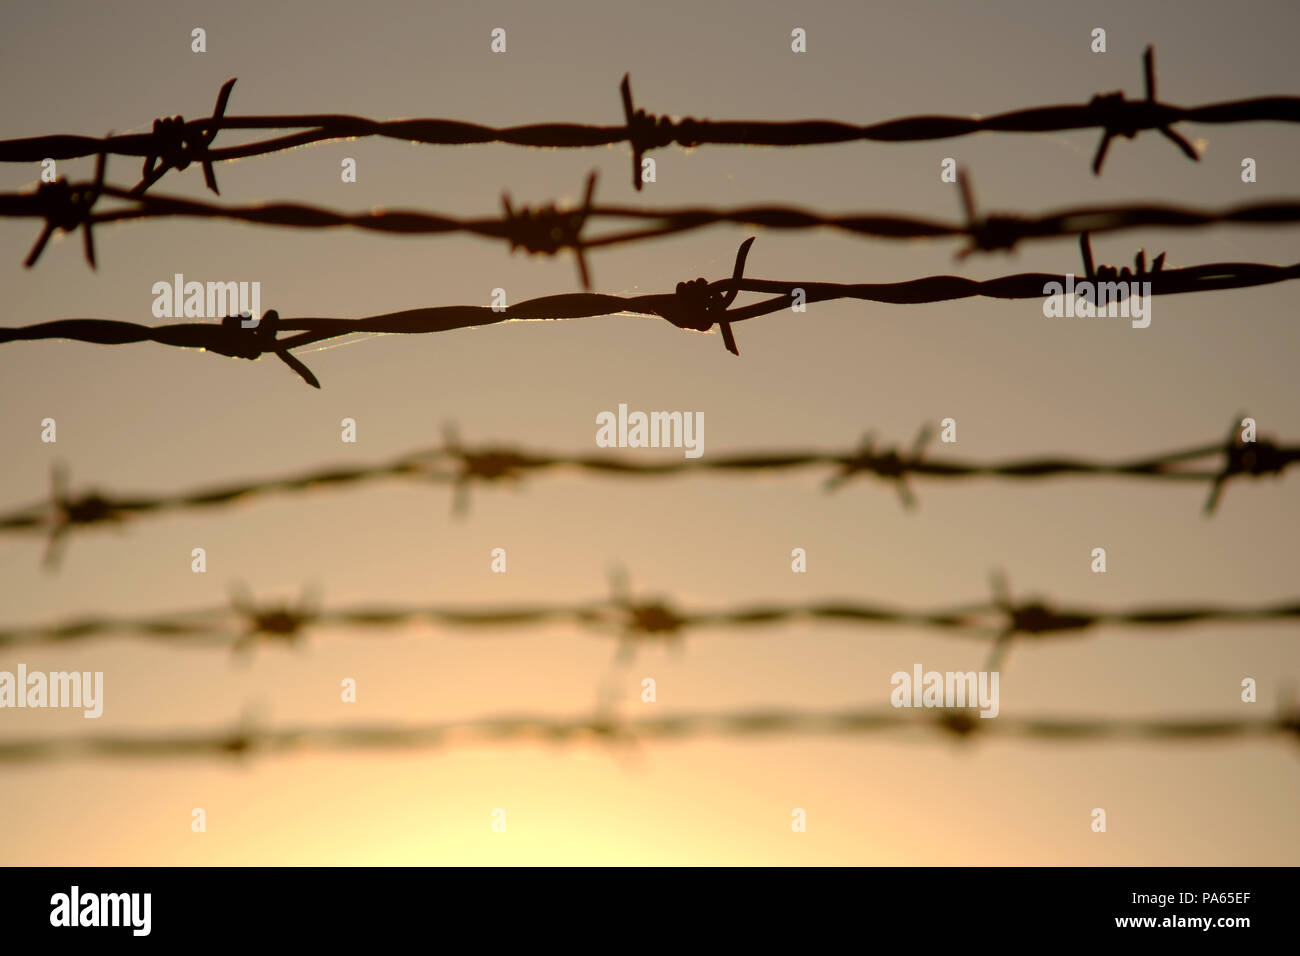 Barbed wire and sun - Stock Image